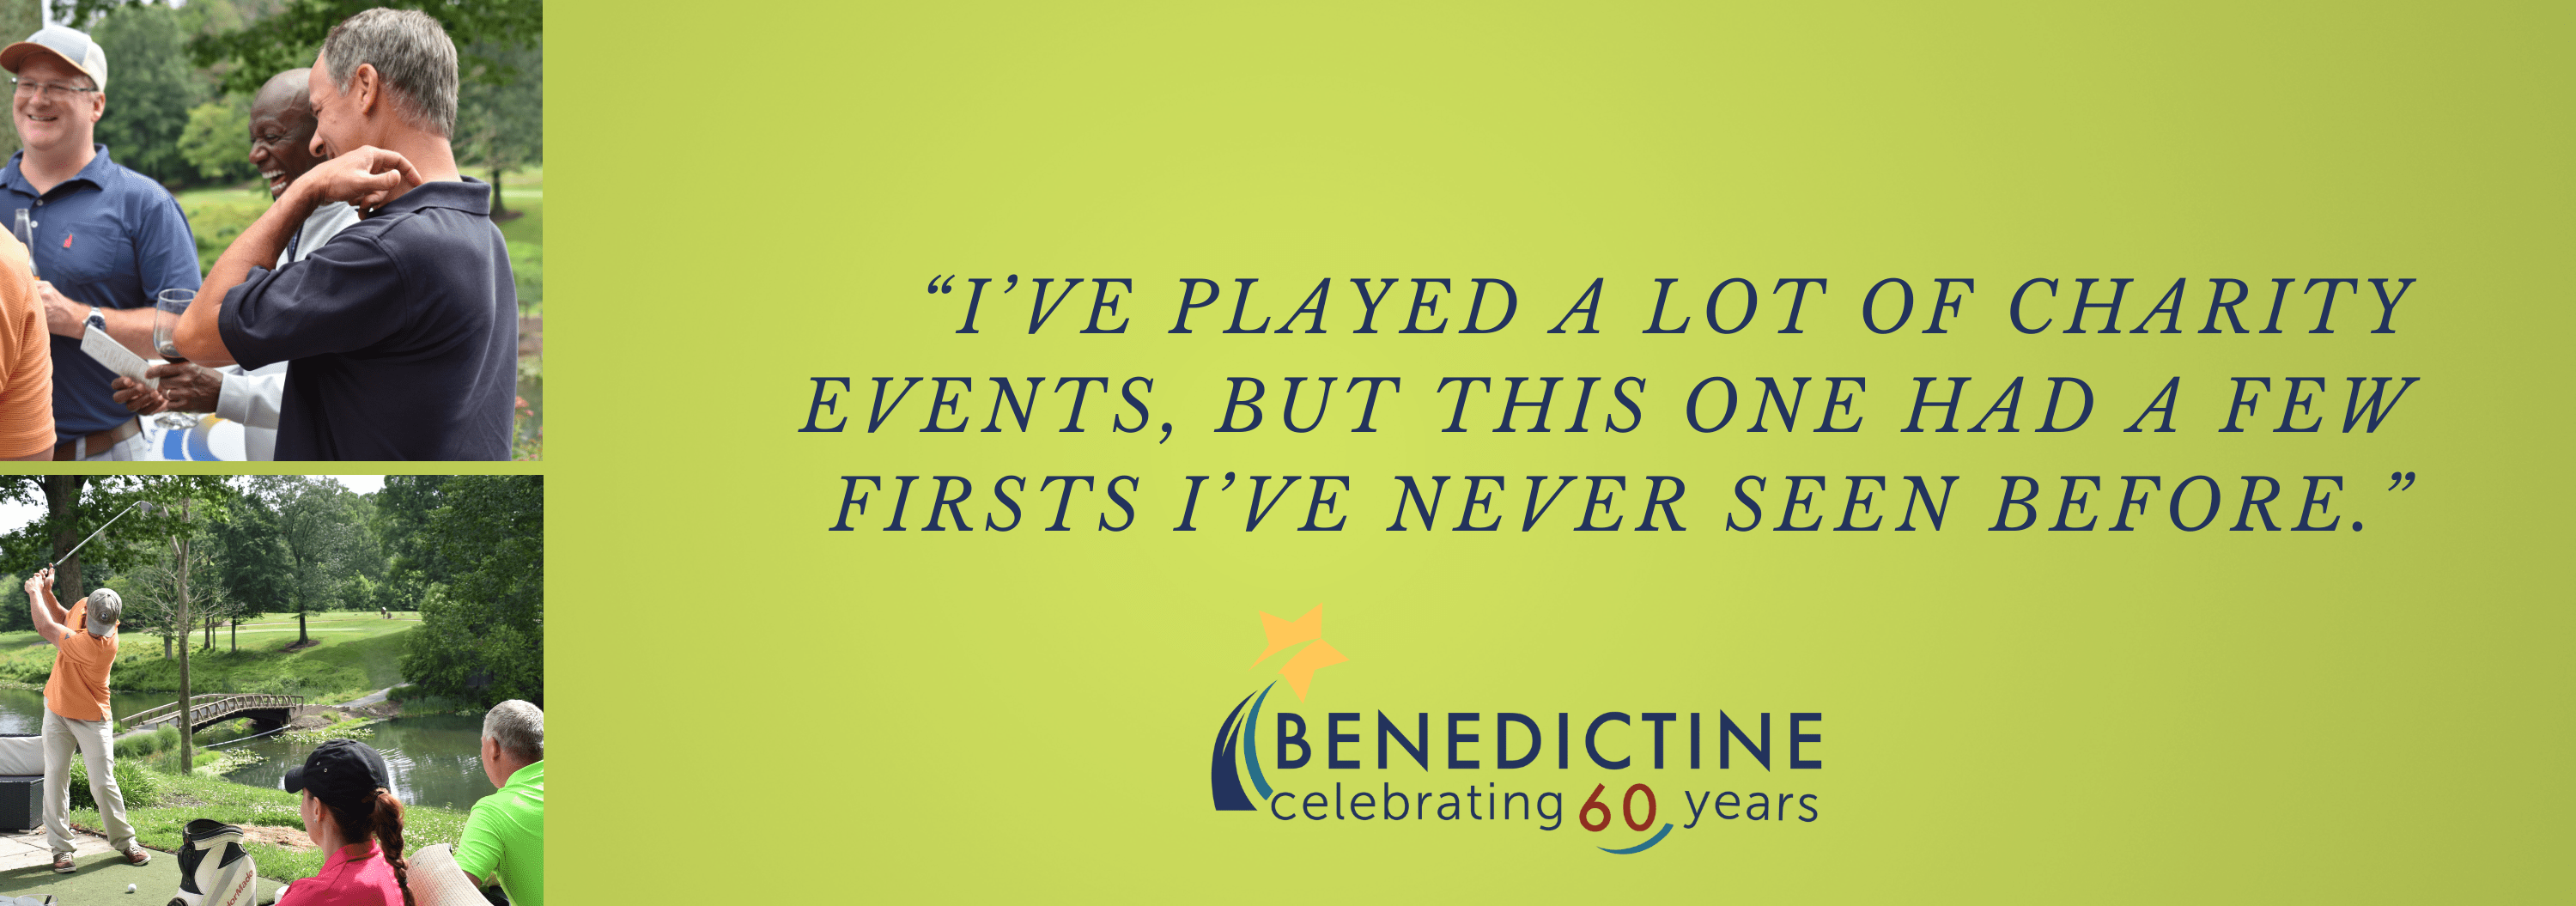 Benedictine Virtual Charity Event Donor Quote